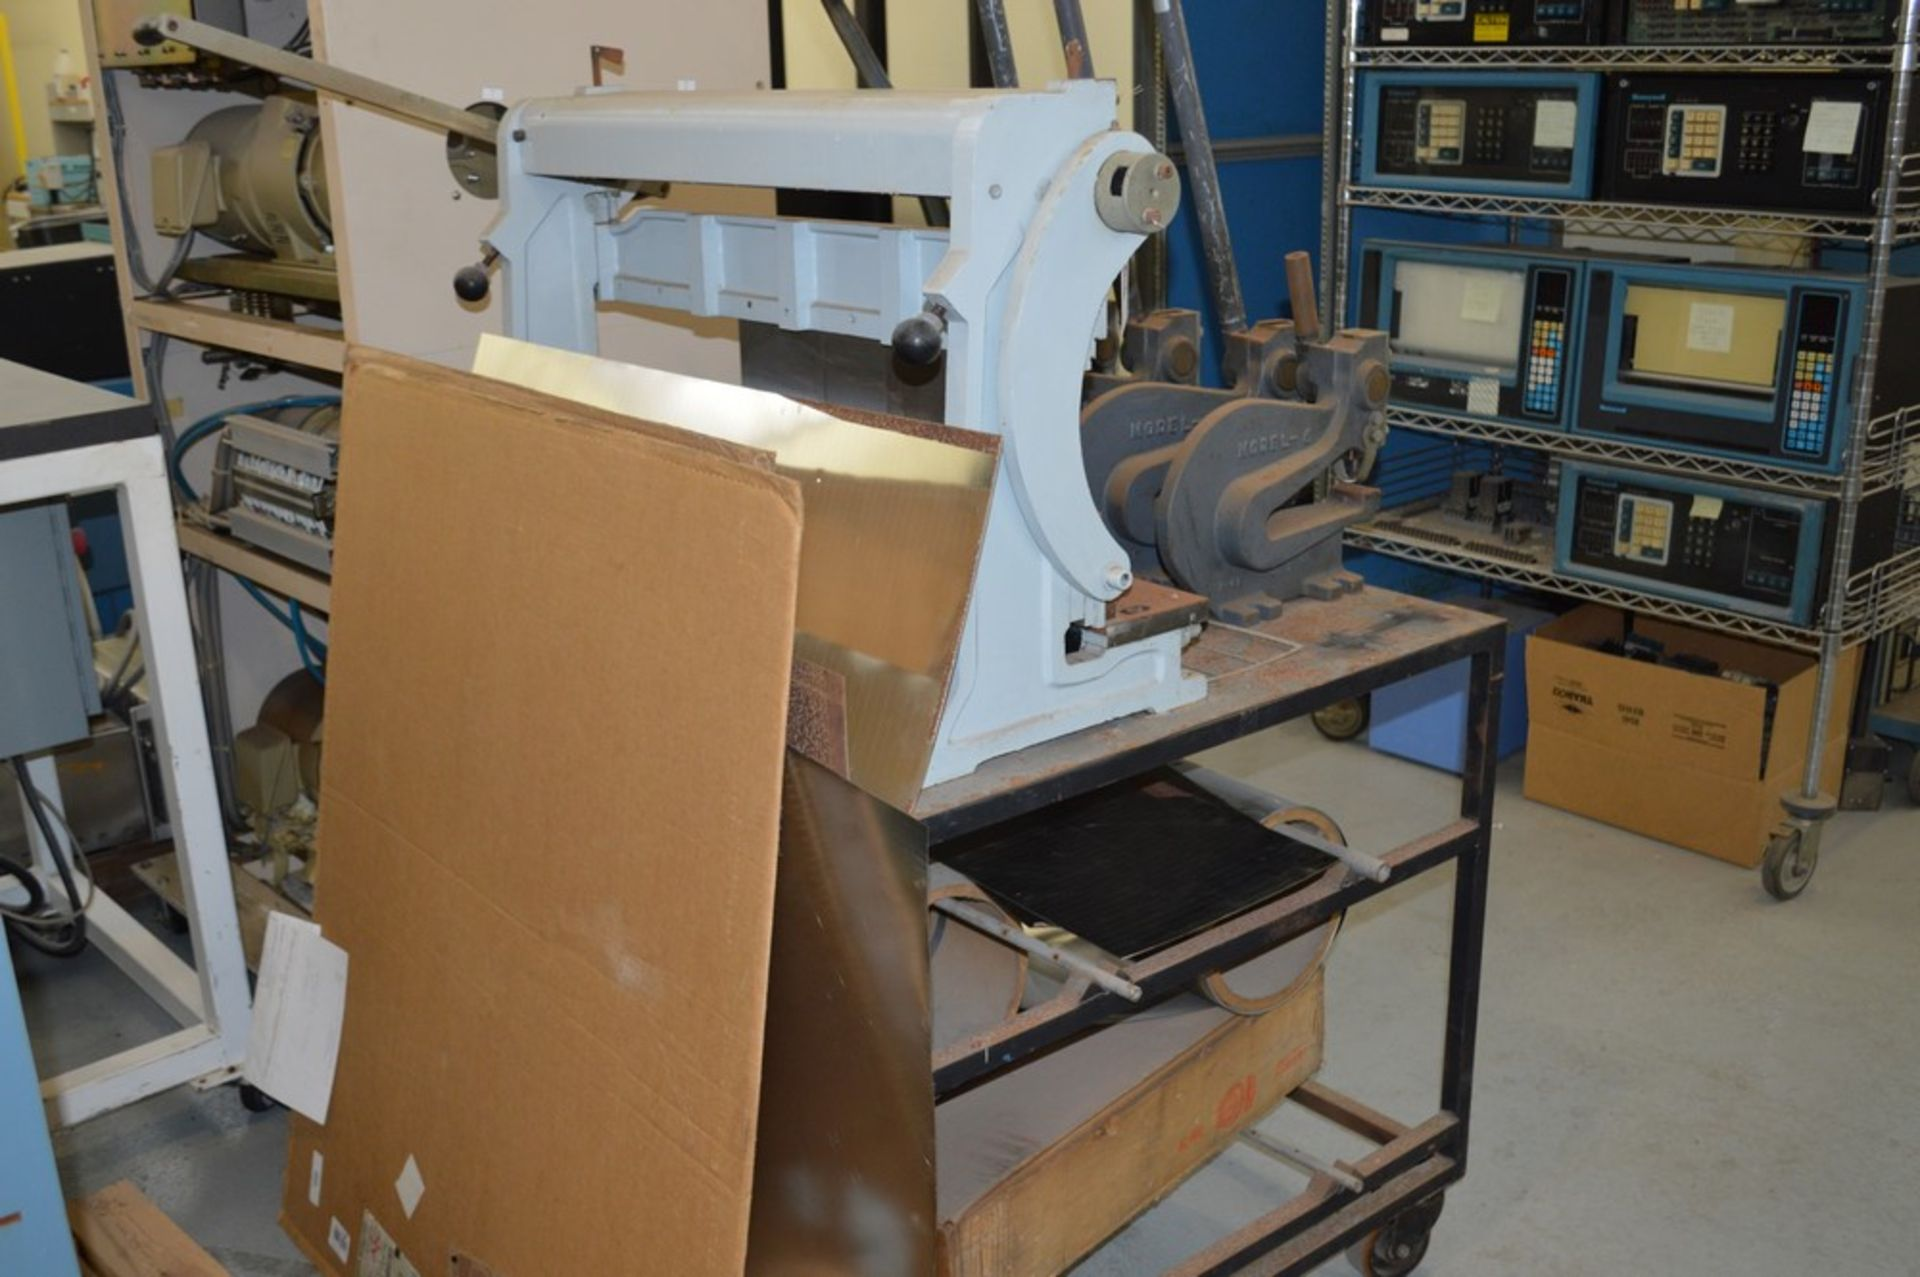 1995 Combined Manual Shear and Break black metal stand, metal rolls, (4 Each) Henrich/Pexto Model- - Image 8 of 8